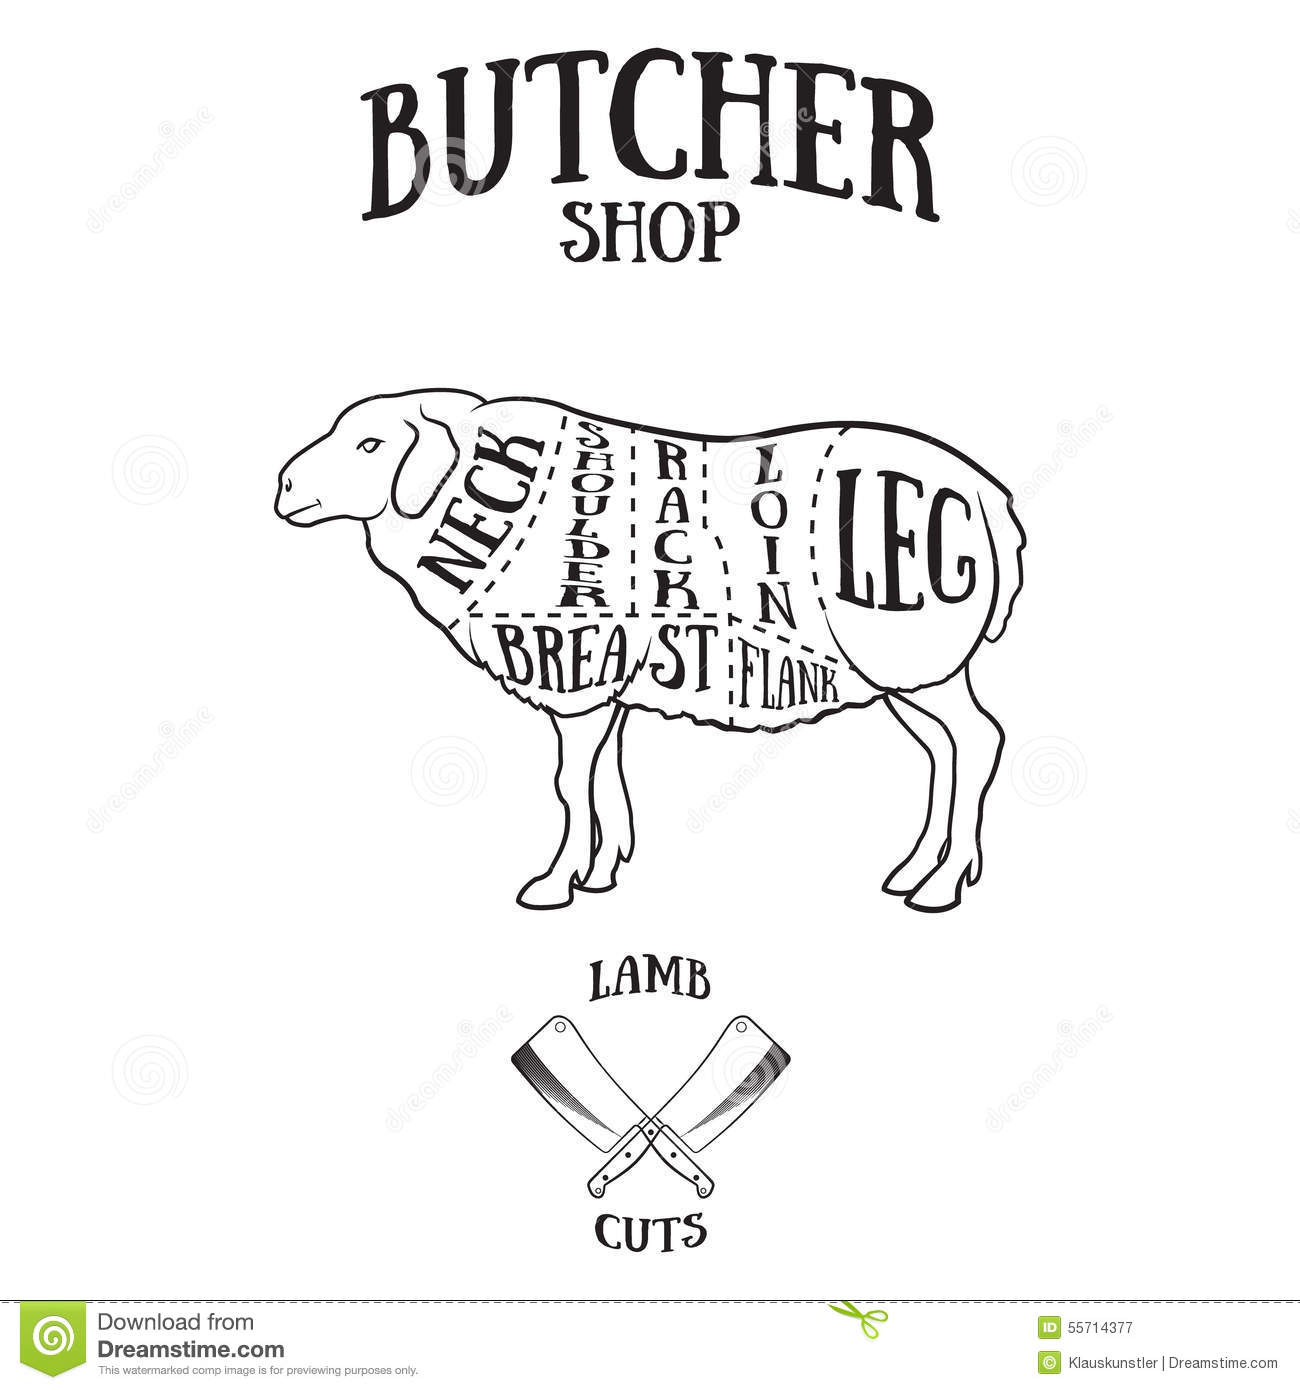 File Loin  PSF as well Teeth Diagram moreover Bavette A Lechalotte likewise Stock Illustration Butcher Cuts Scheme Lamb Mutton Hand Drawn Illustration Vintage Style Image55714377 also Beef Anatomy Chart. on meat cuts diagram